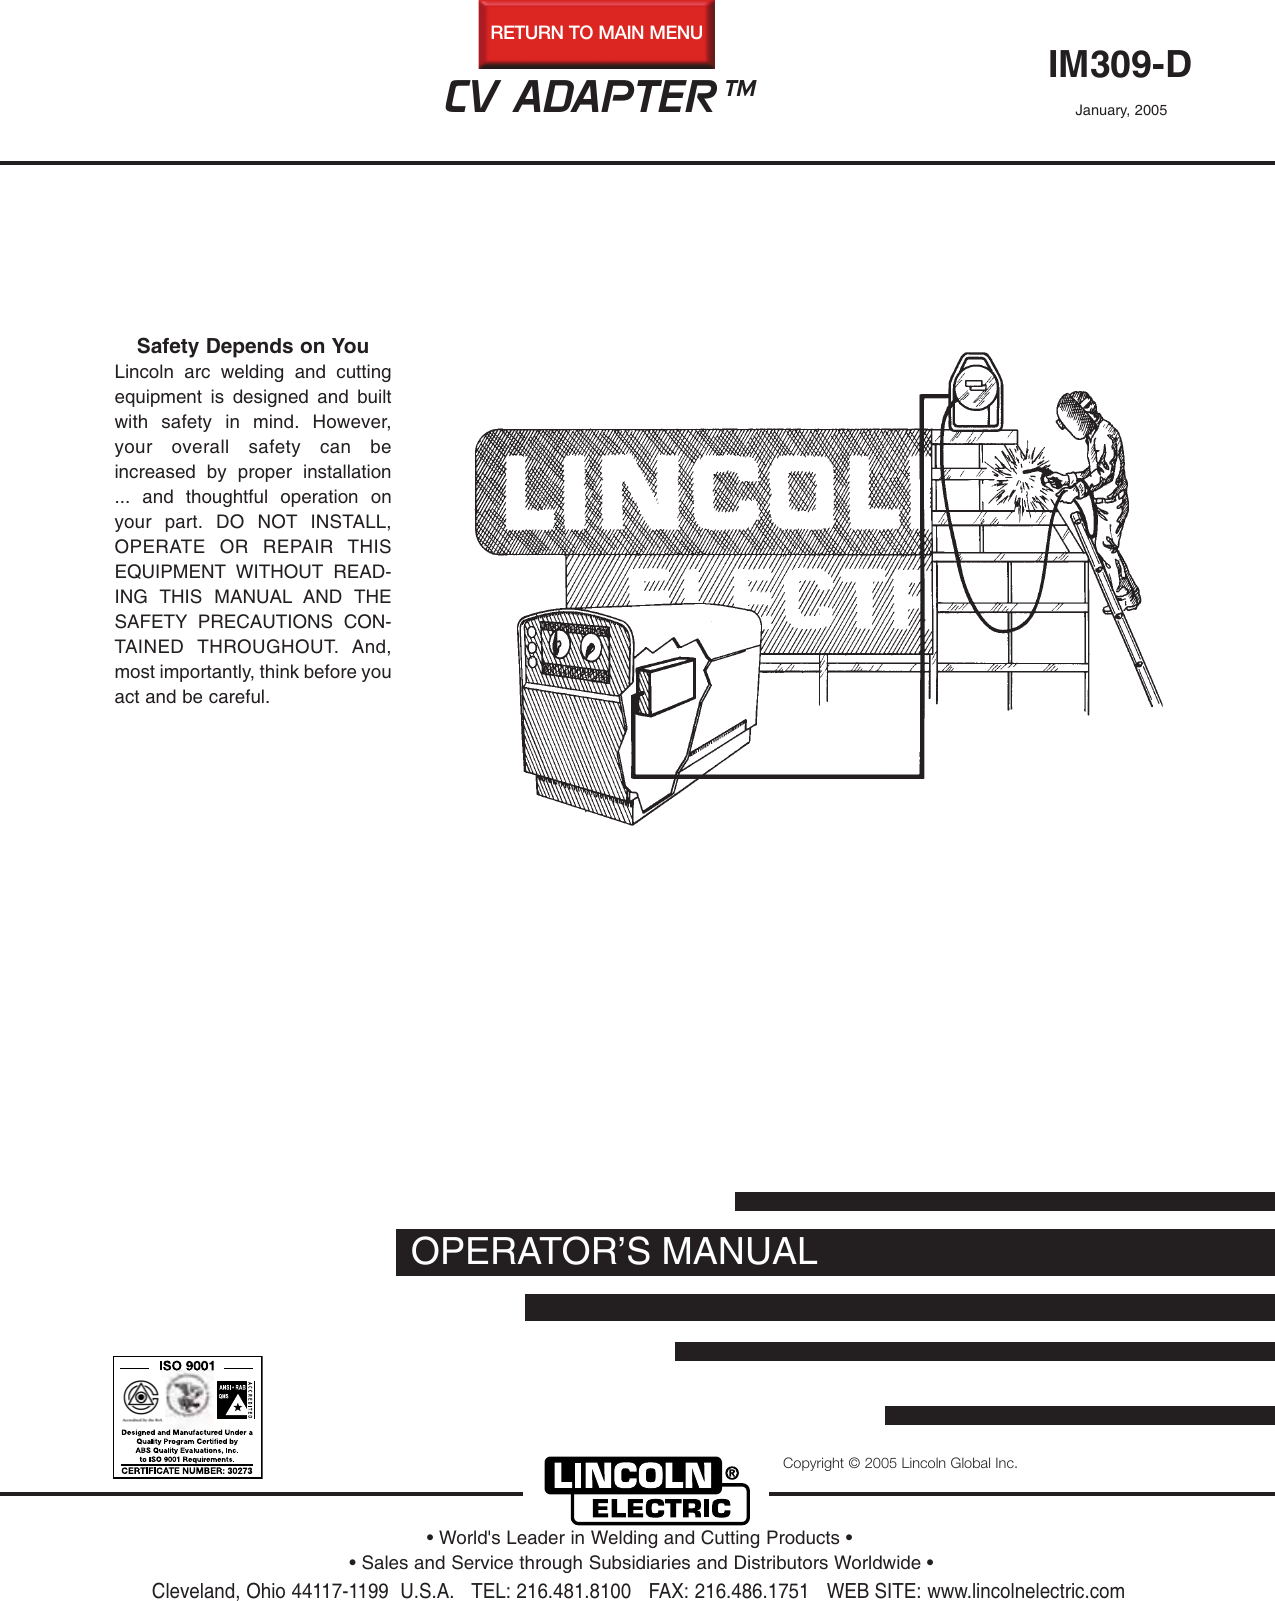 lincoln electric cv adapter im309 d users manualLincoln Sa 200 Welder Wiring Diagram Besides Spark Plug Wiring Diagram #8